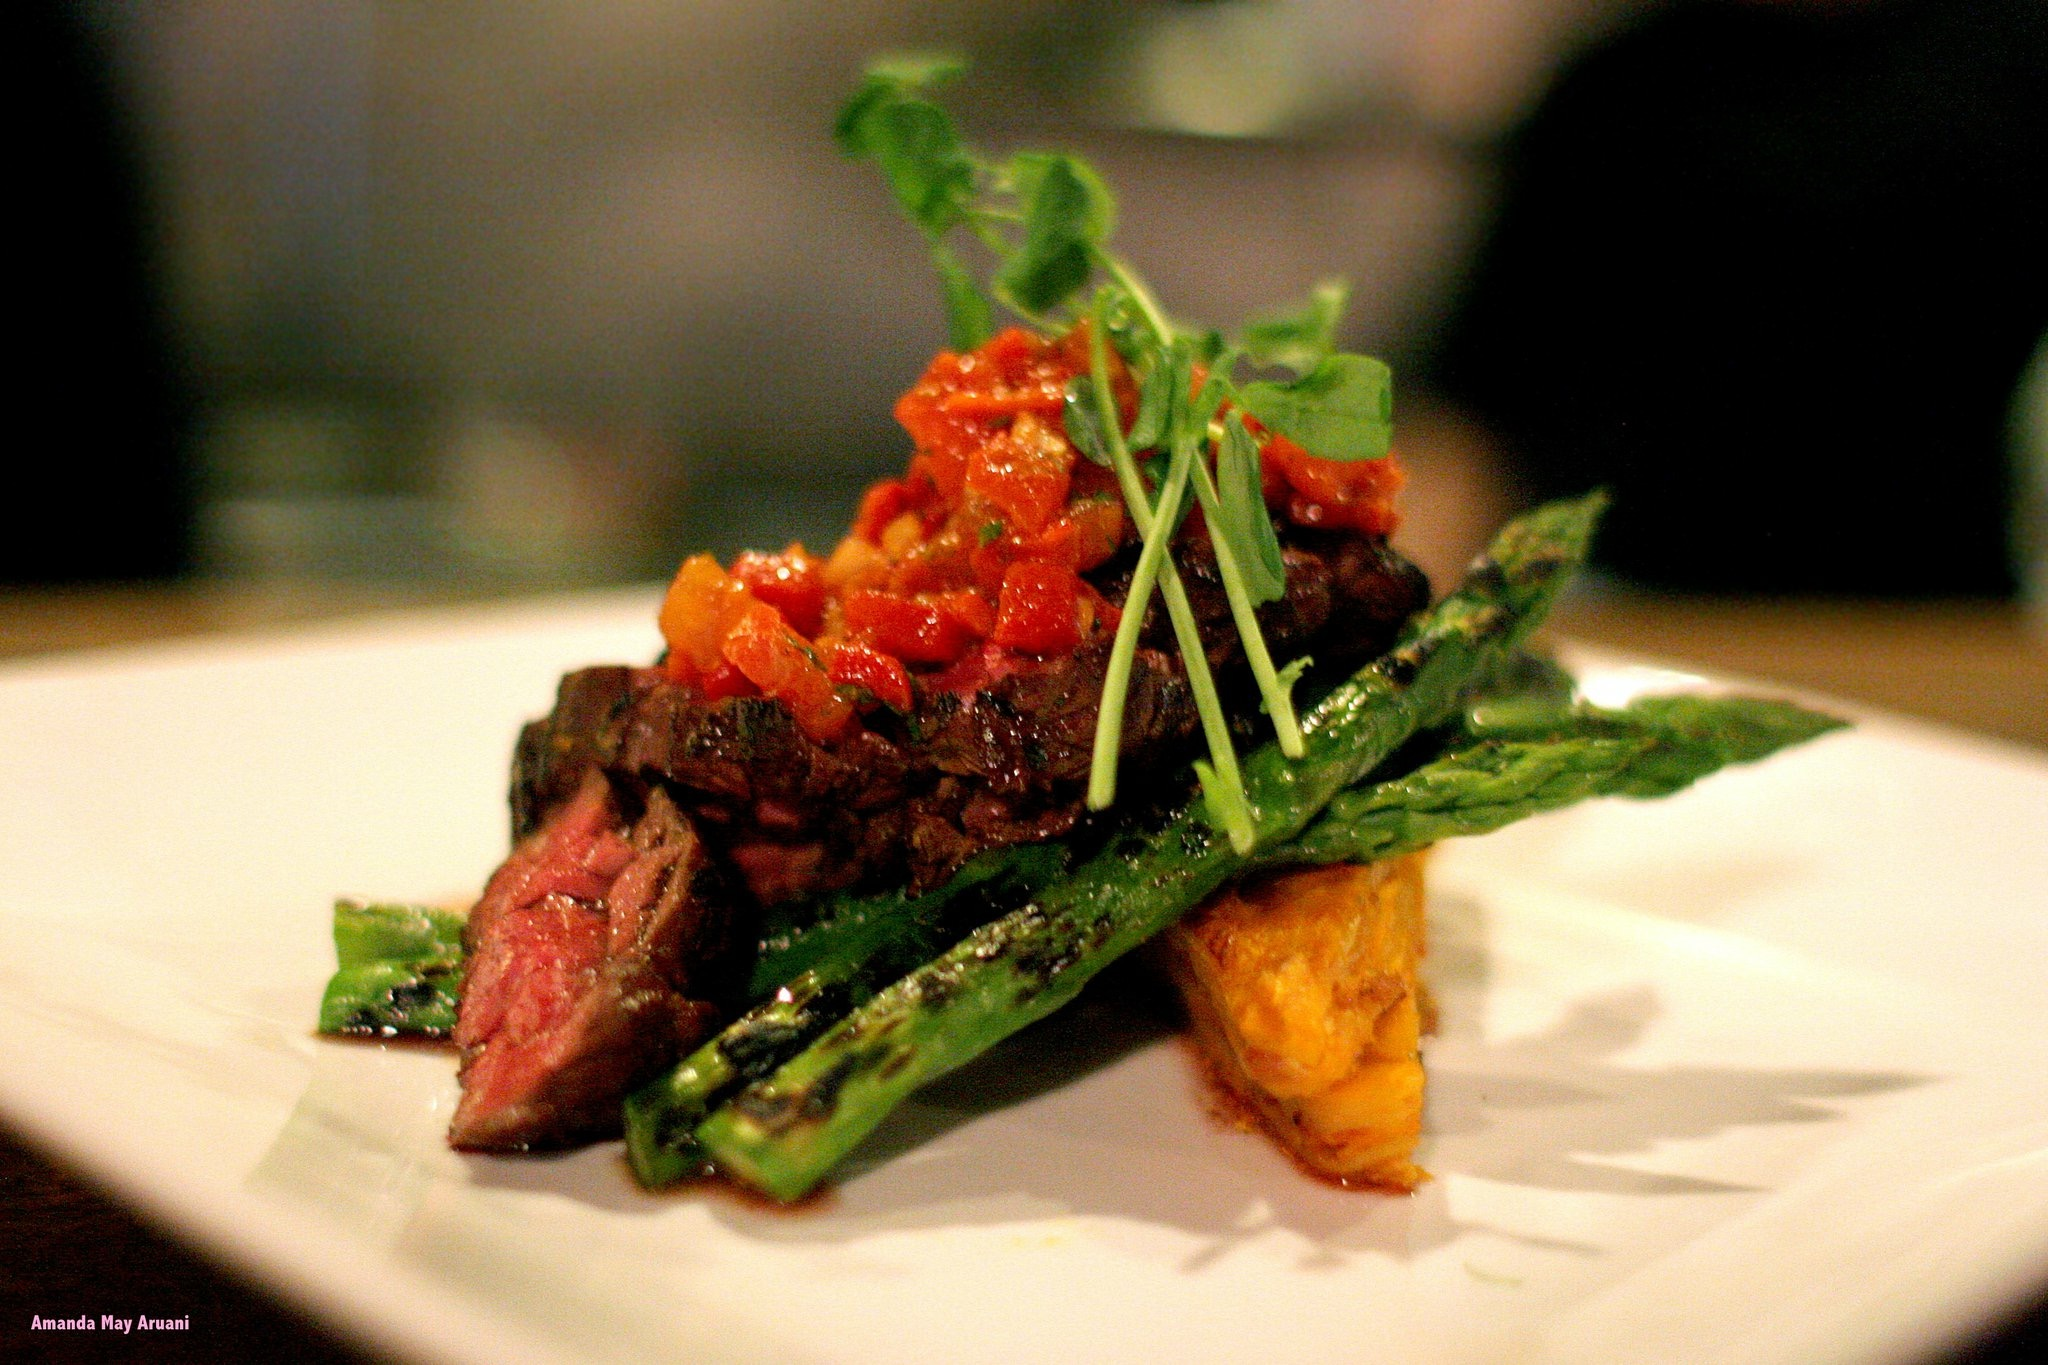 Hanger steak at One Twenty Six